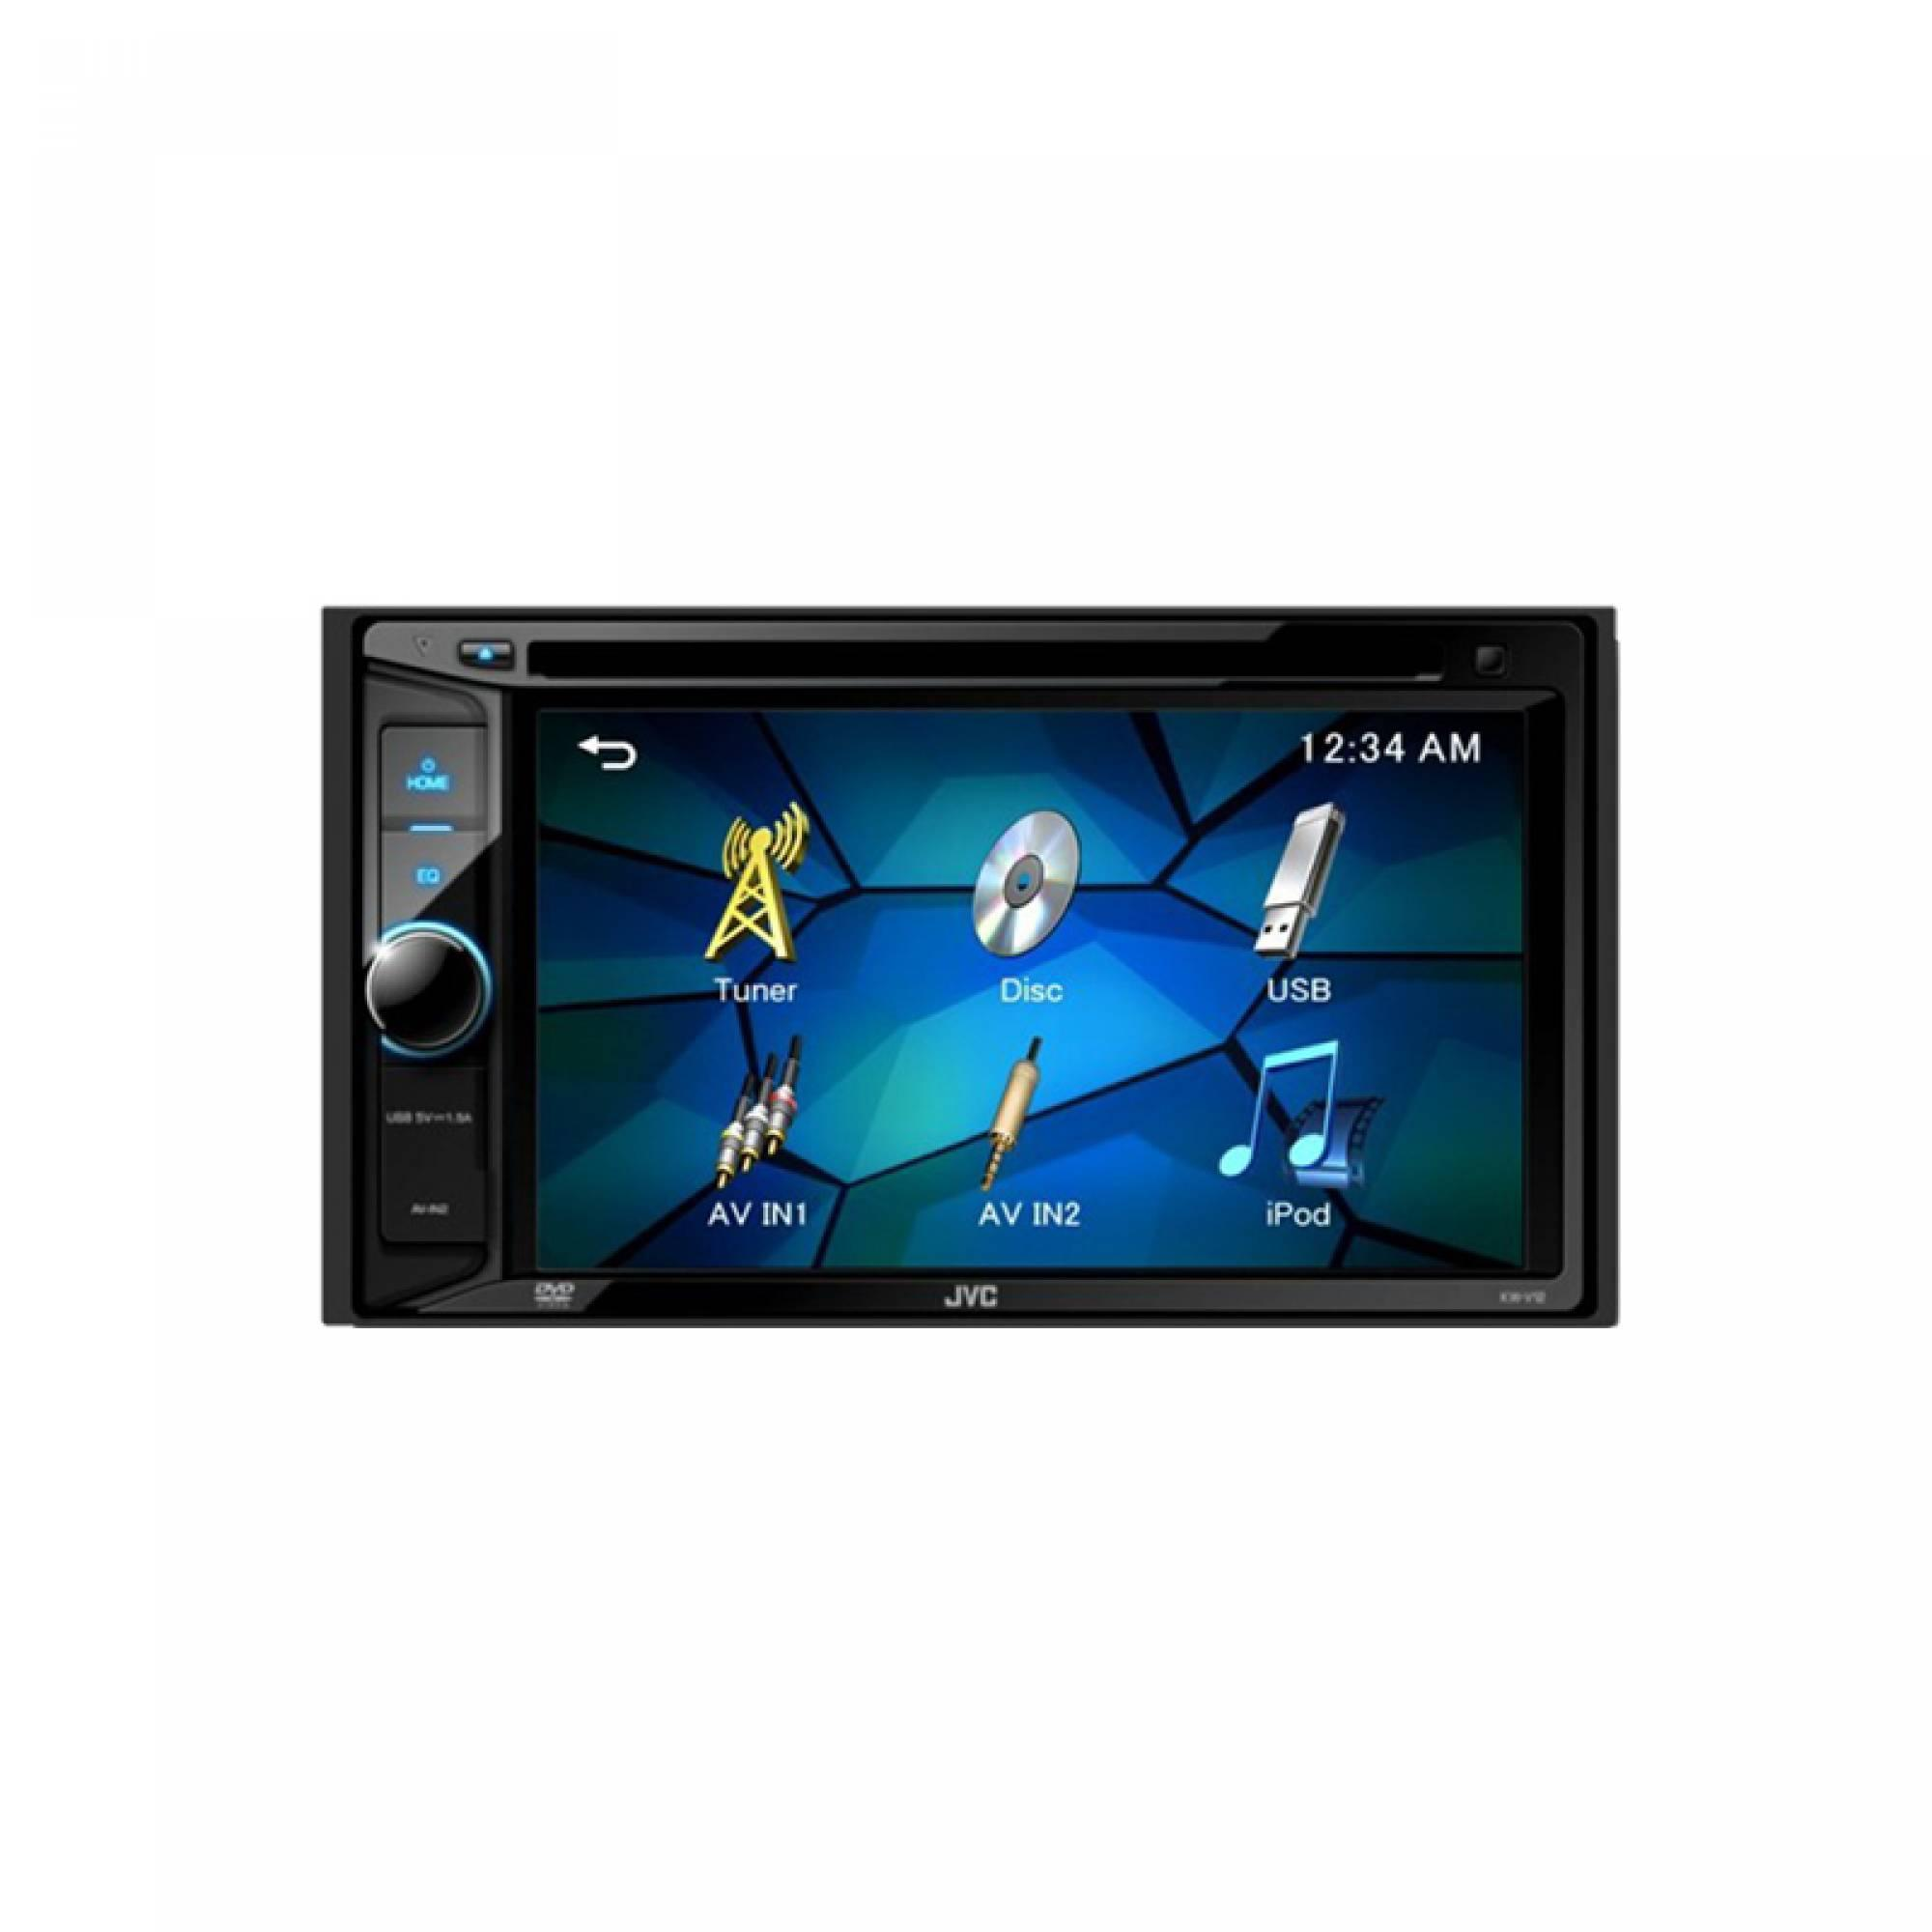 JVC KW-V12 DOUBLE DIN PLAYER | BROTHER'S FACTORY